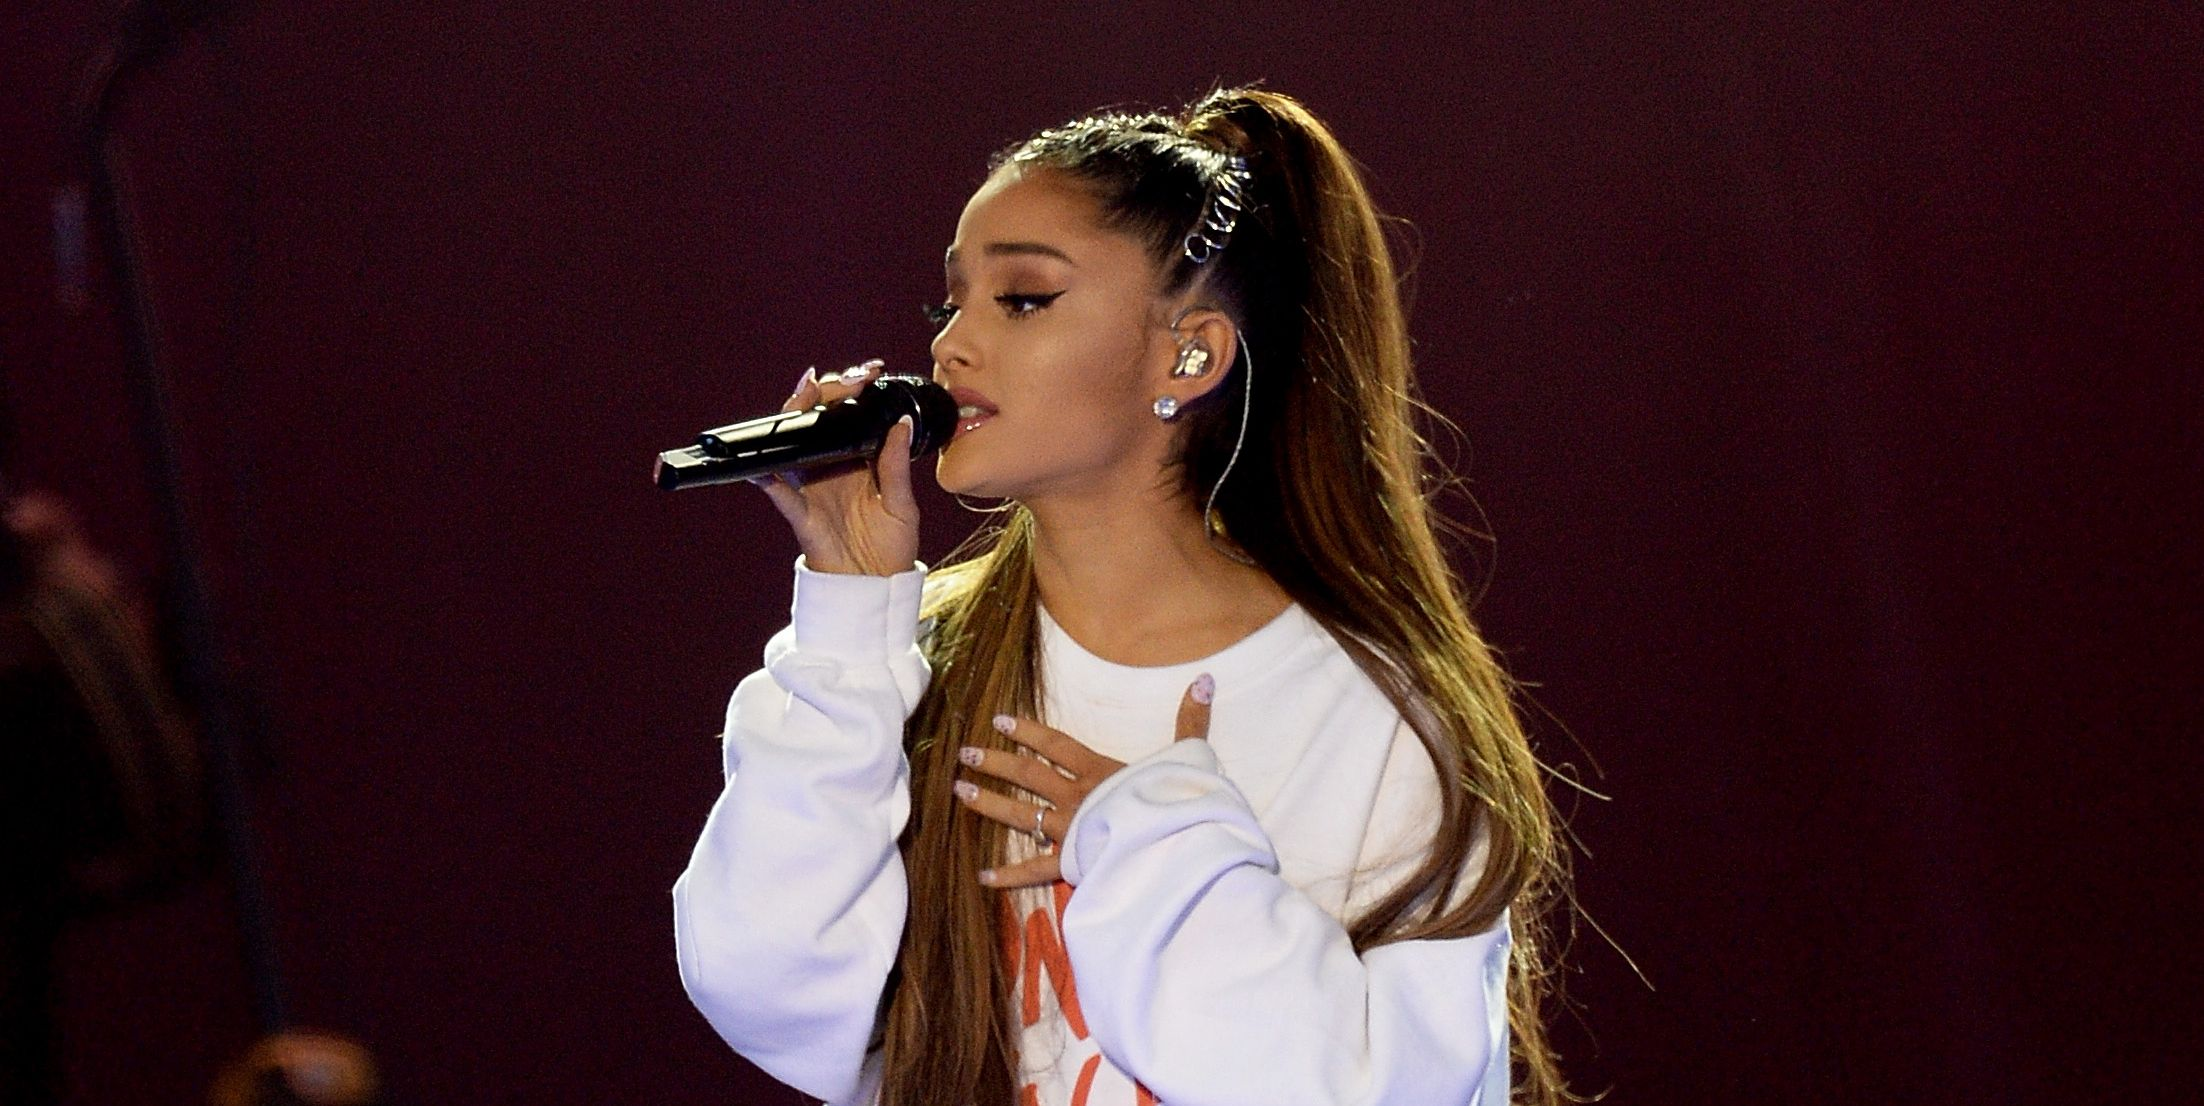 A Man Was Arrested for Threatening to Attack Ariana Grande's Costa Rica Concert